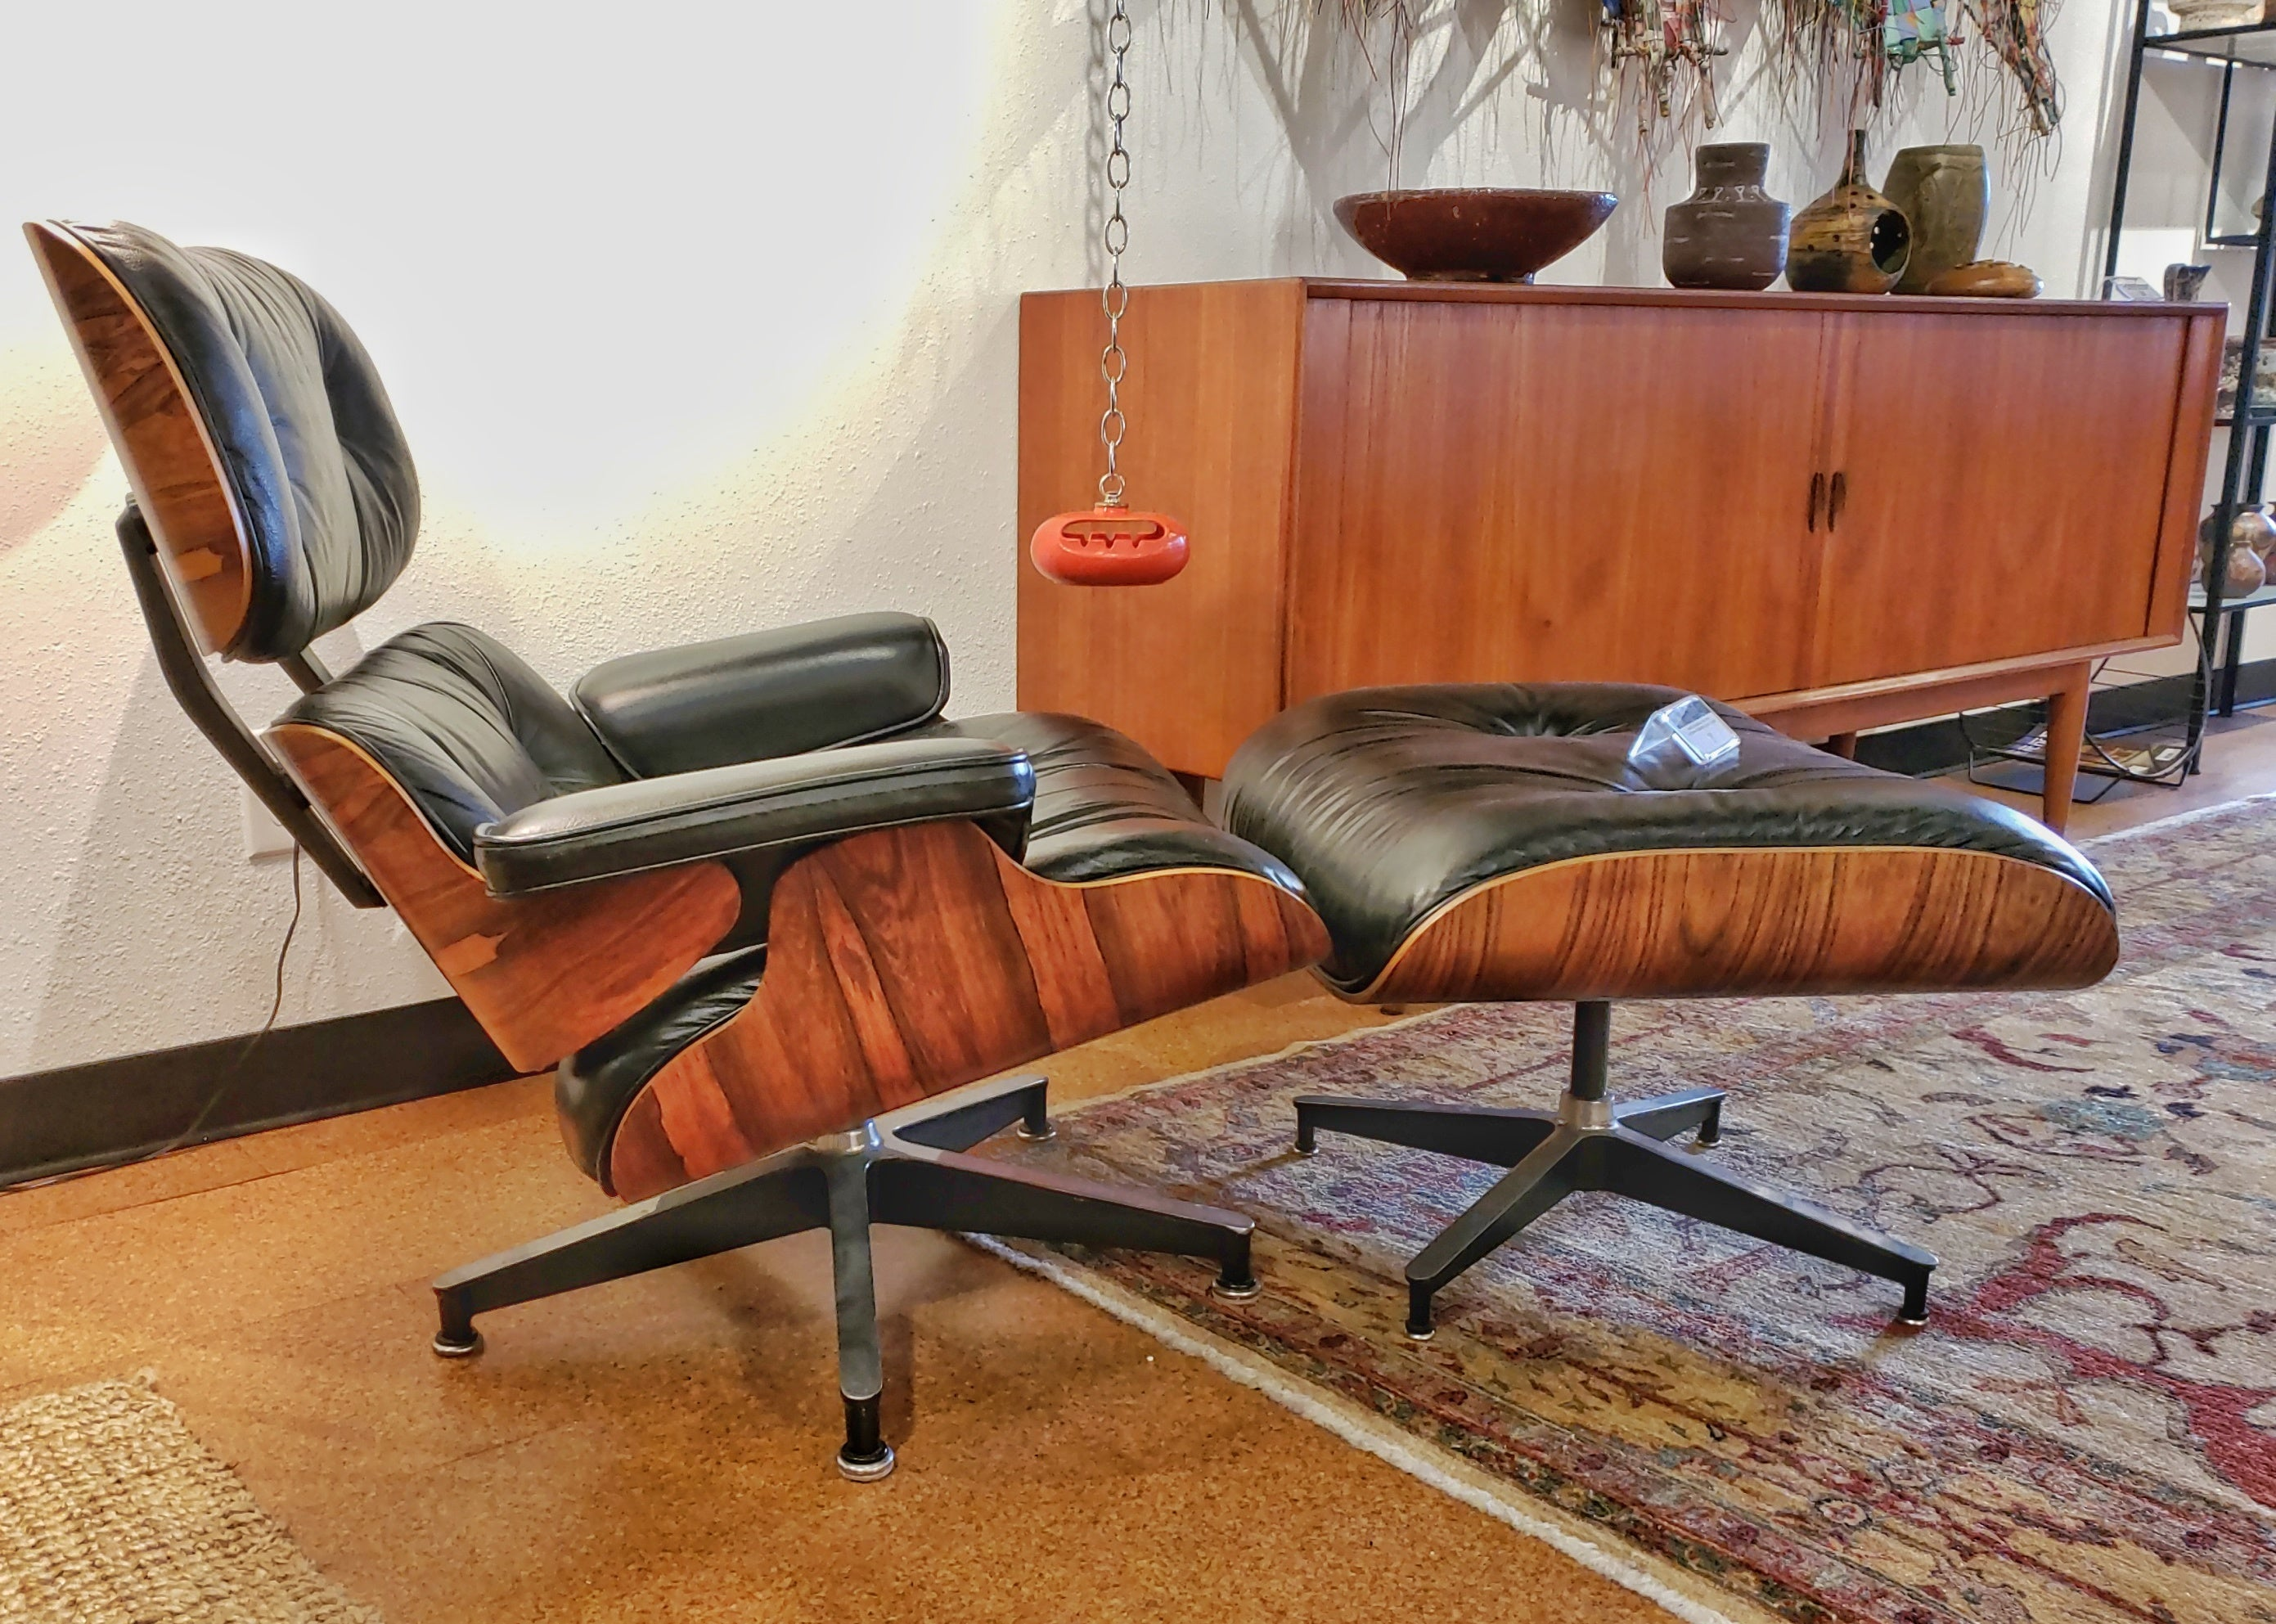 Prime Charles Ray Eames Lounge Chair 670 With Ottoman 671 Creativecarmelina Interior Chair Design Creativecarmelinacom